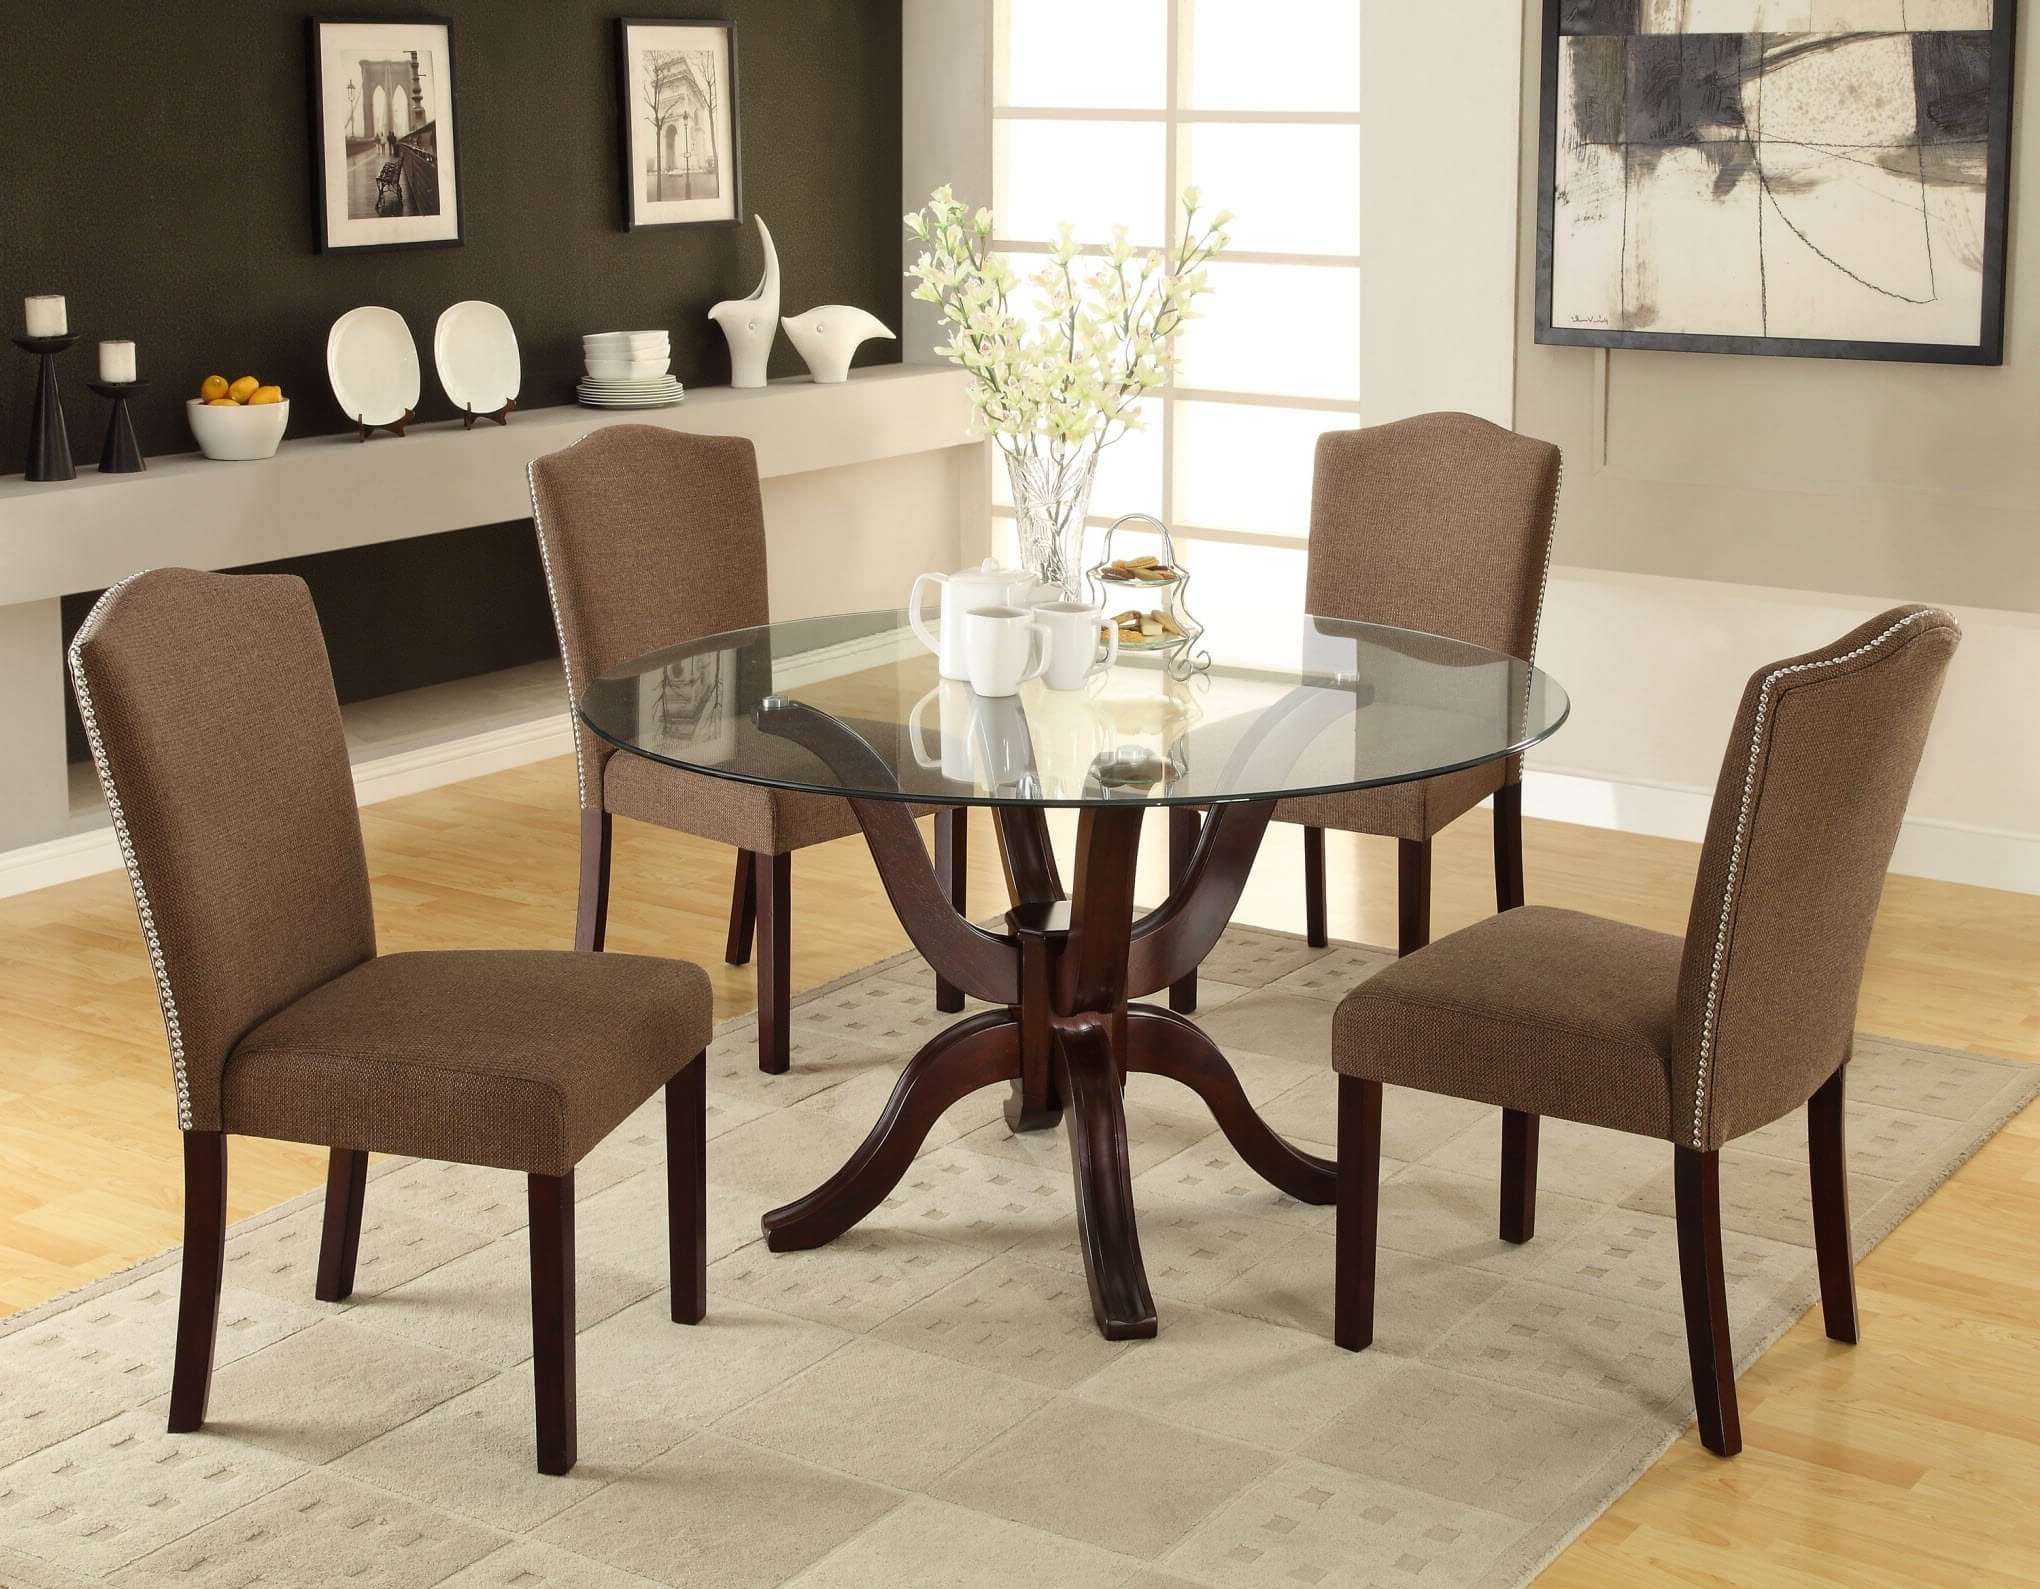 Newest Glass Dining Tables Sets With Round Glass Dining Table Sets For 4 Best Of Round Glass Dining Table (View 18 of 25)